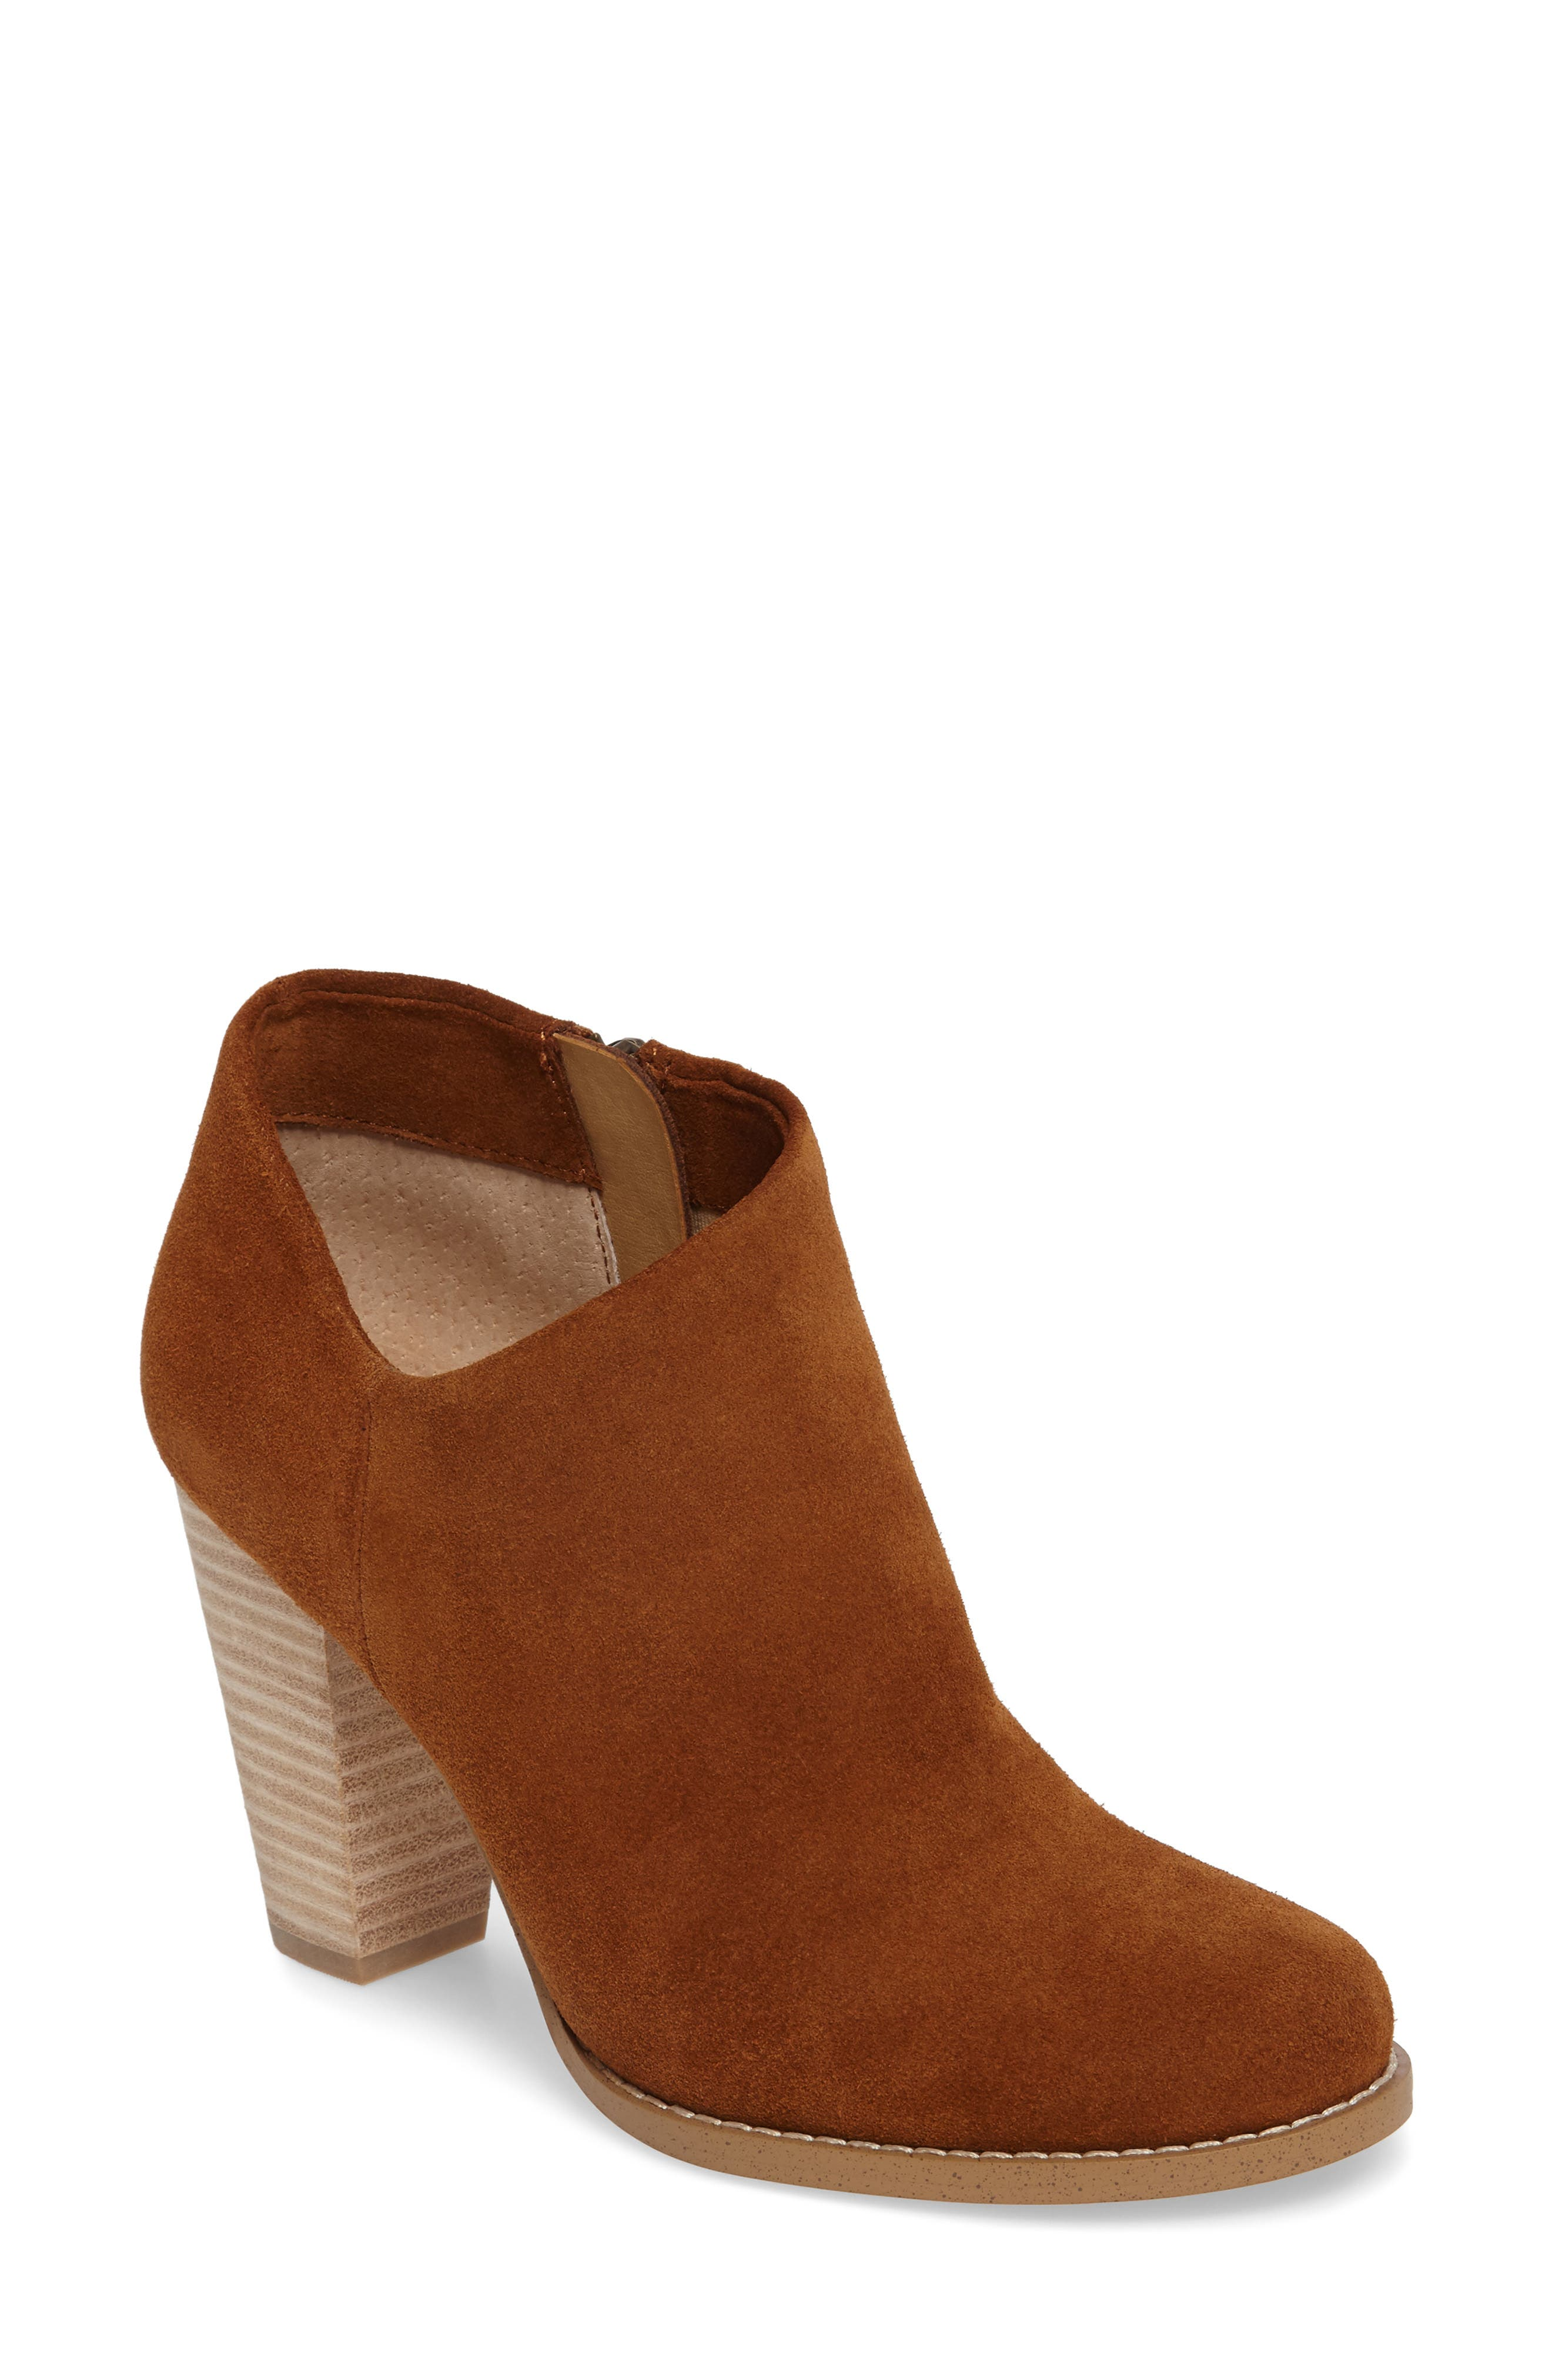 Daphne Bootie,                         Main,                         color, Whiskey Suede